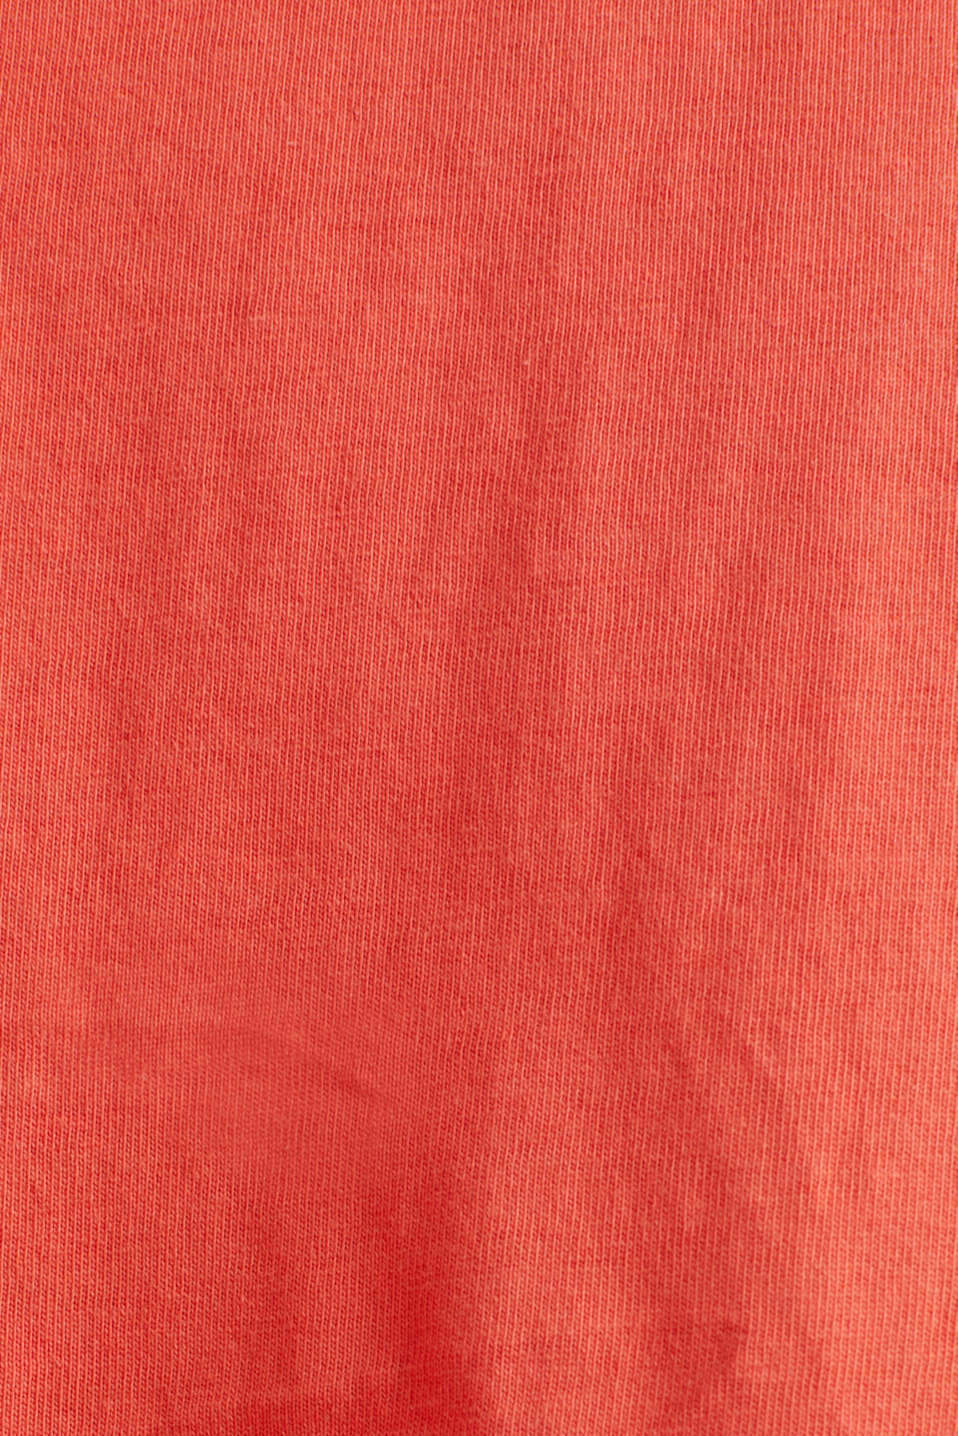 CURVY jersey dress made of 100% cotton, CORAL, detail image number 4